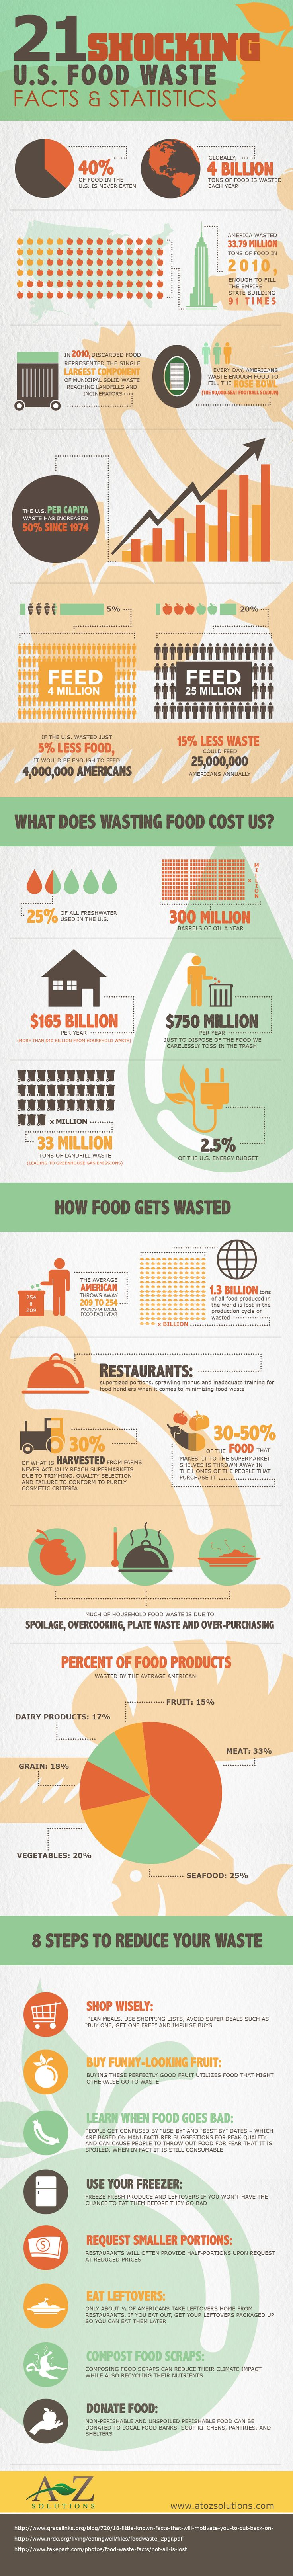 21 Shocking U.S. Food Waste Facts & Statistics - Infographic